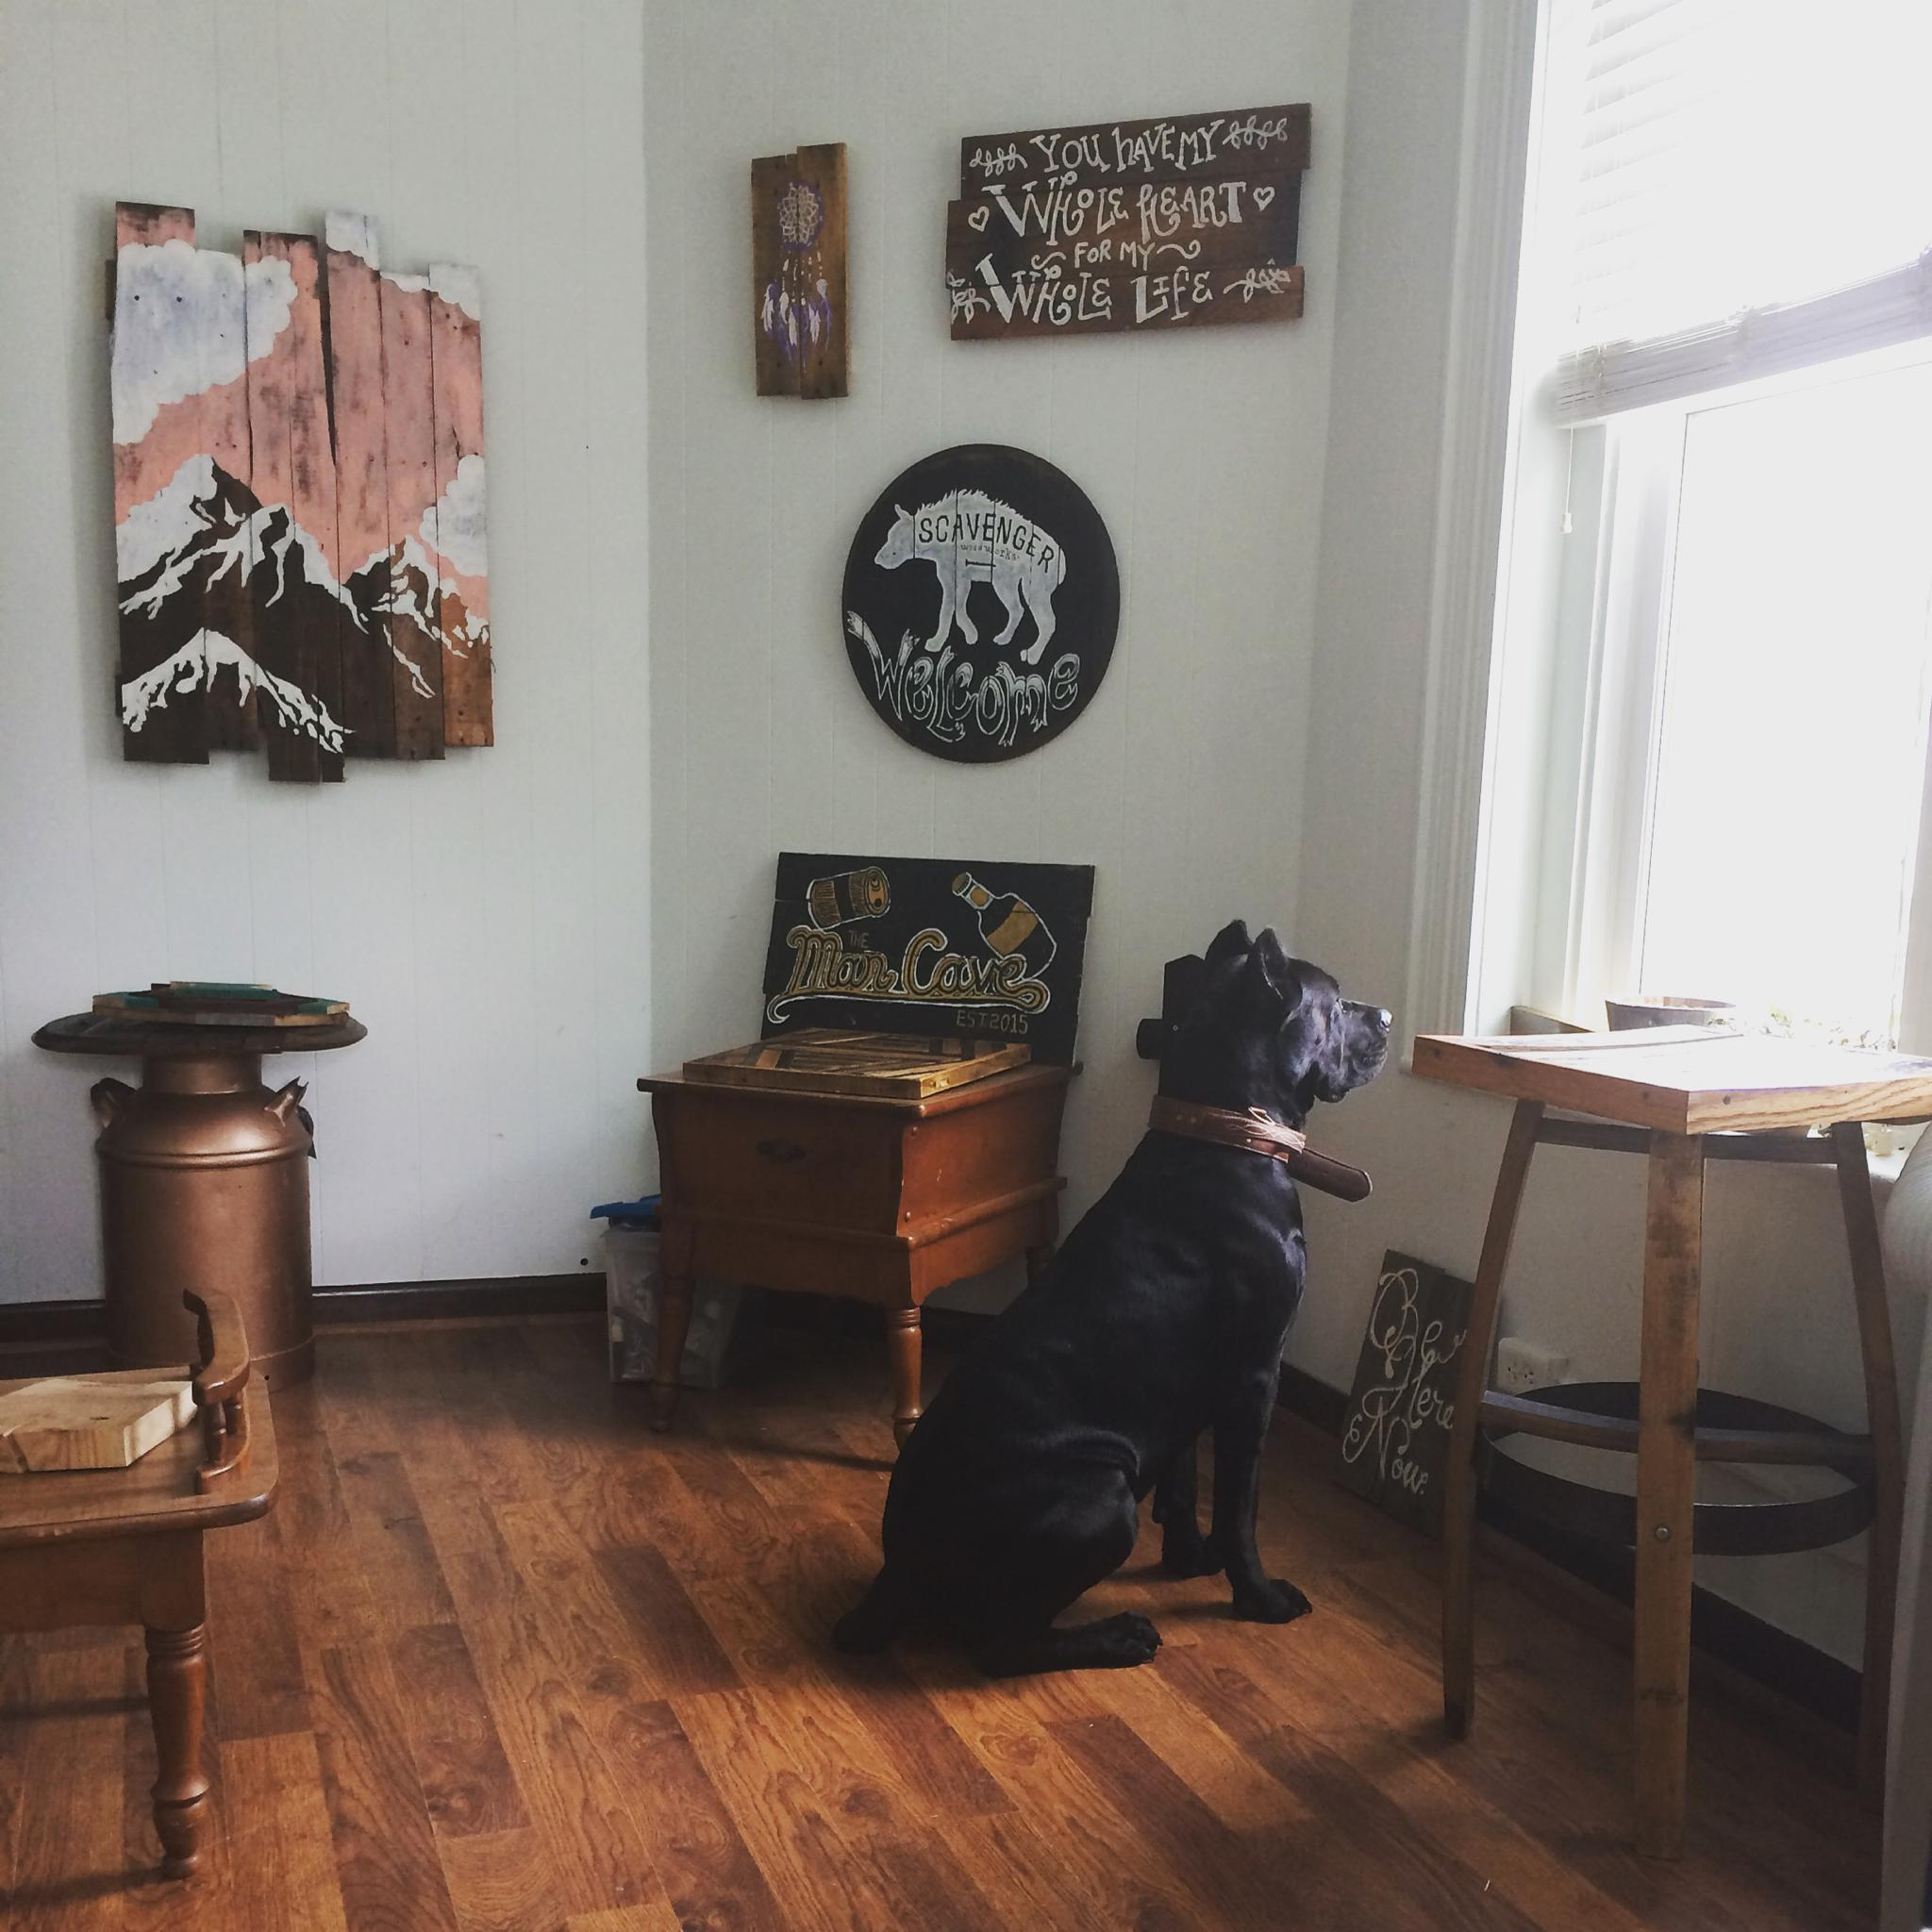 Our cane corso posing with our Reclaimed wood painted signs and furniture in Bend, Oregon